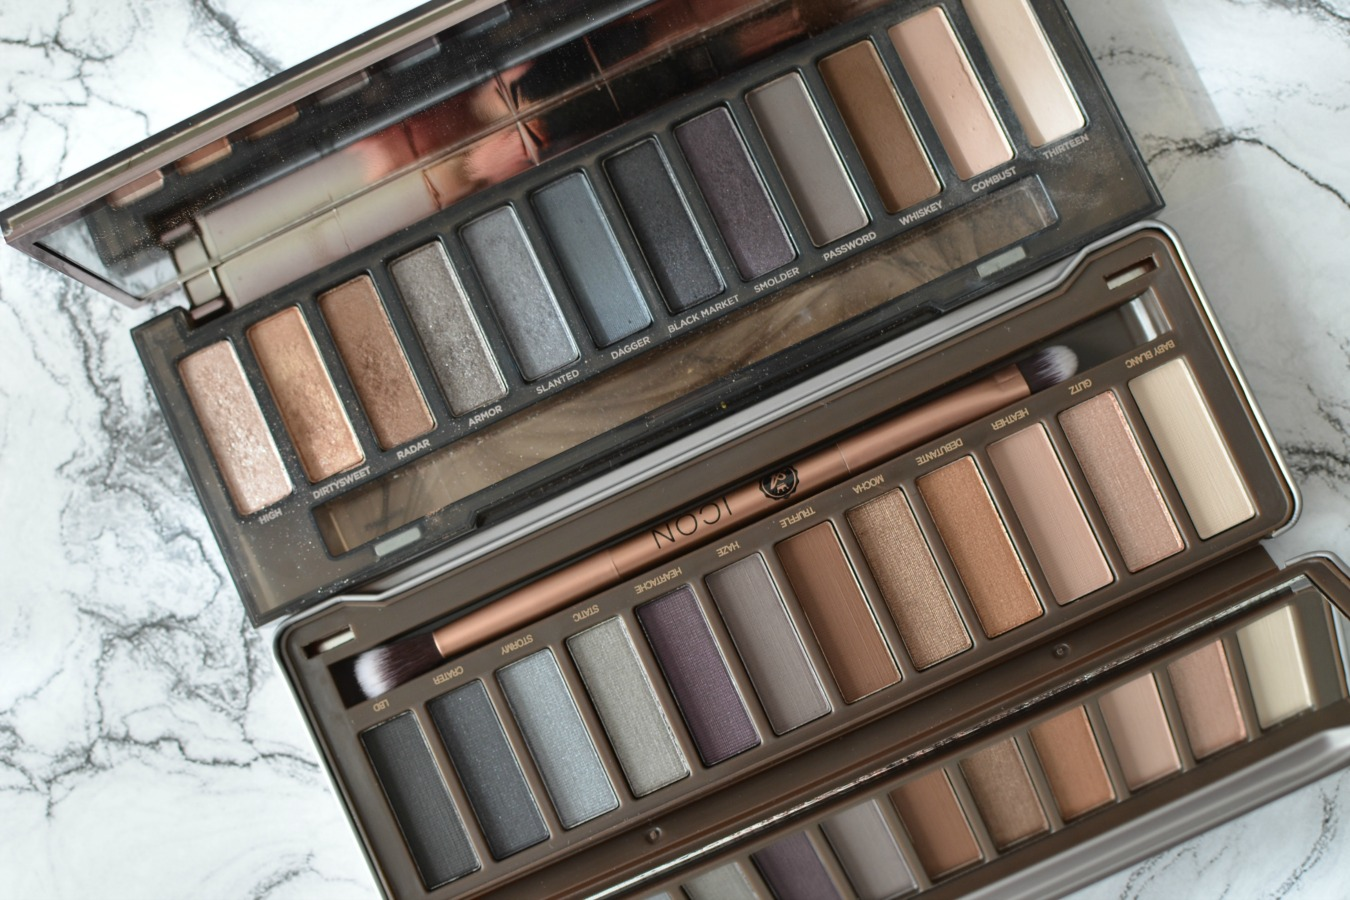 ICON de Absolute New York clon de Naked Smoky de Urban Decay